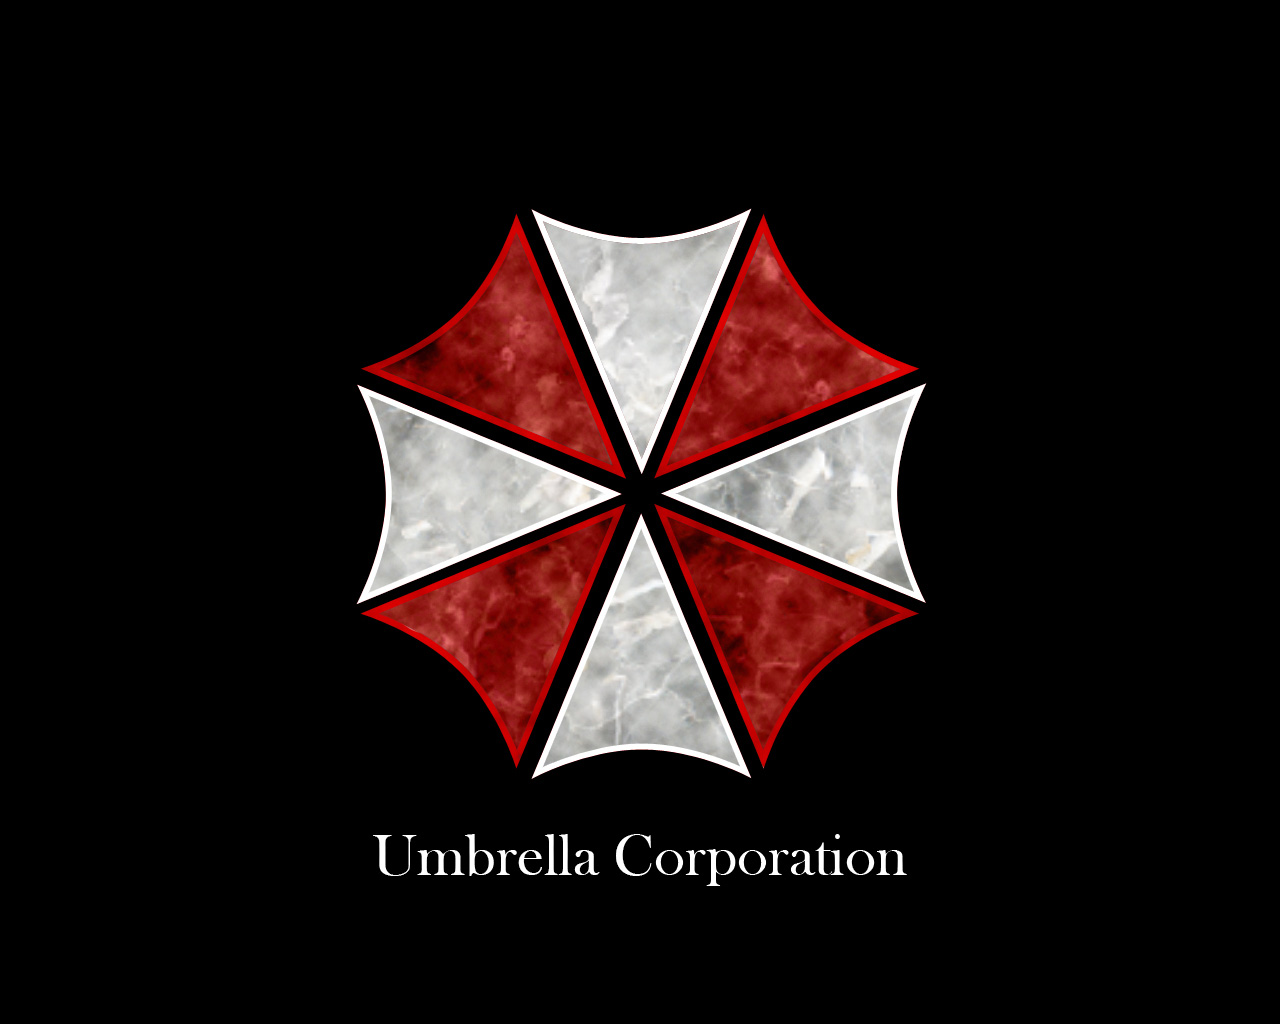 [Image: umbrella-corporation-logo.jpg]